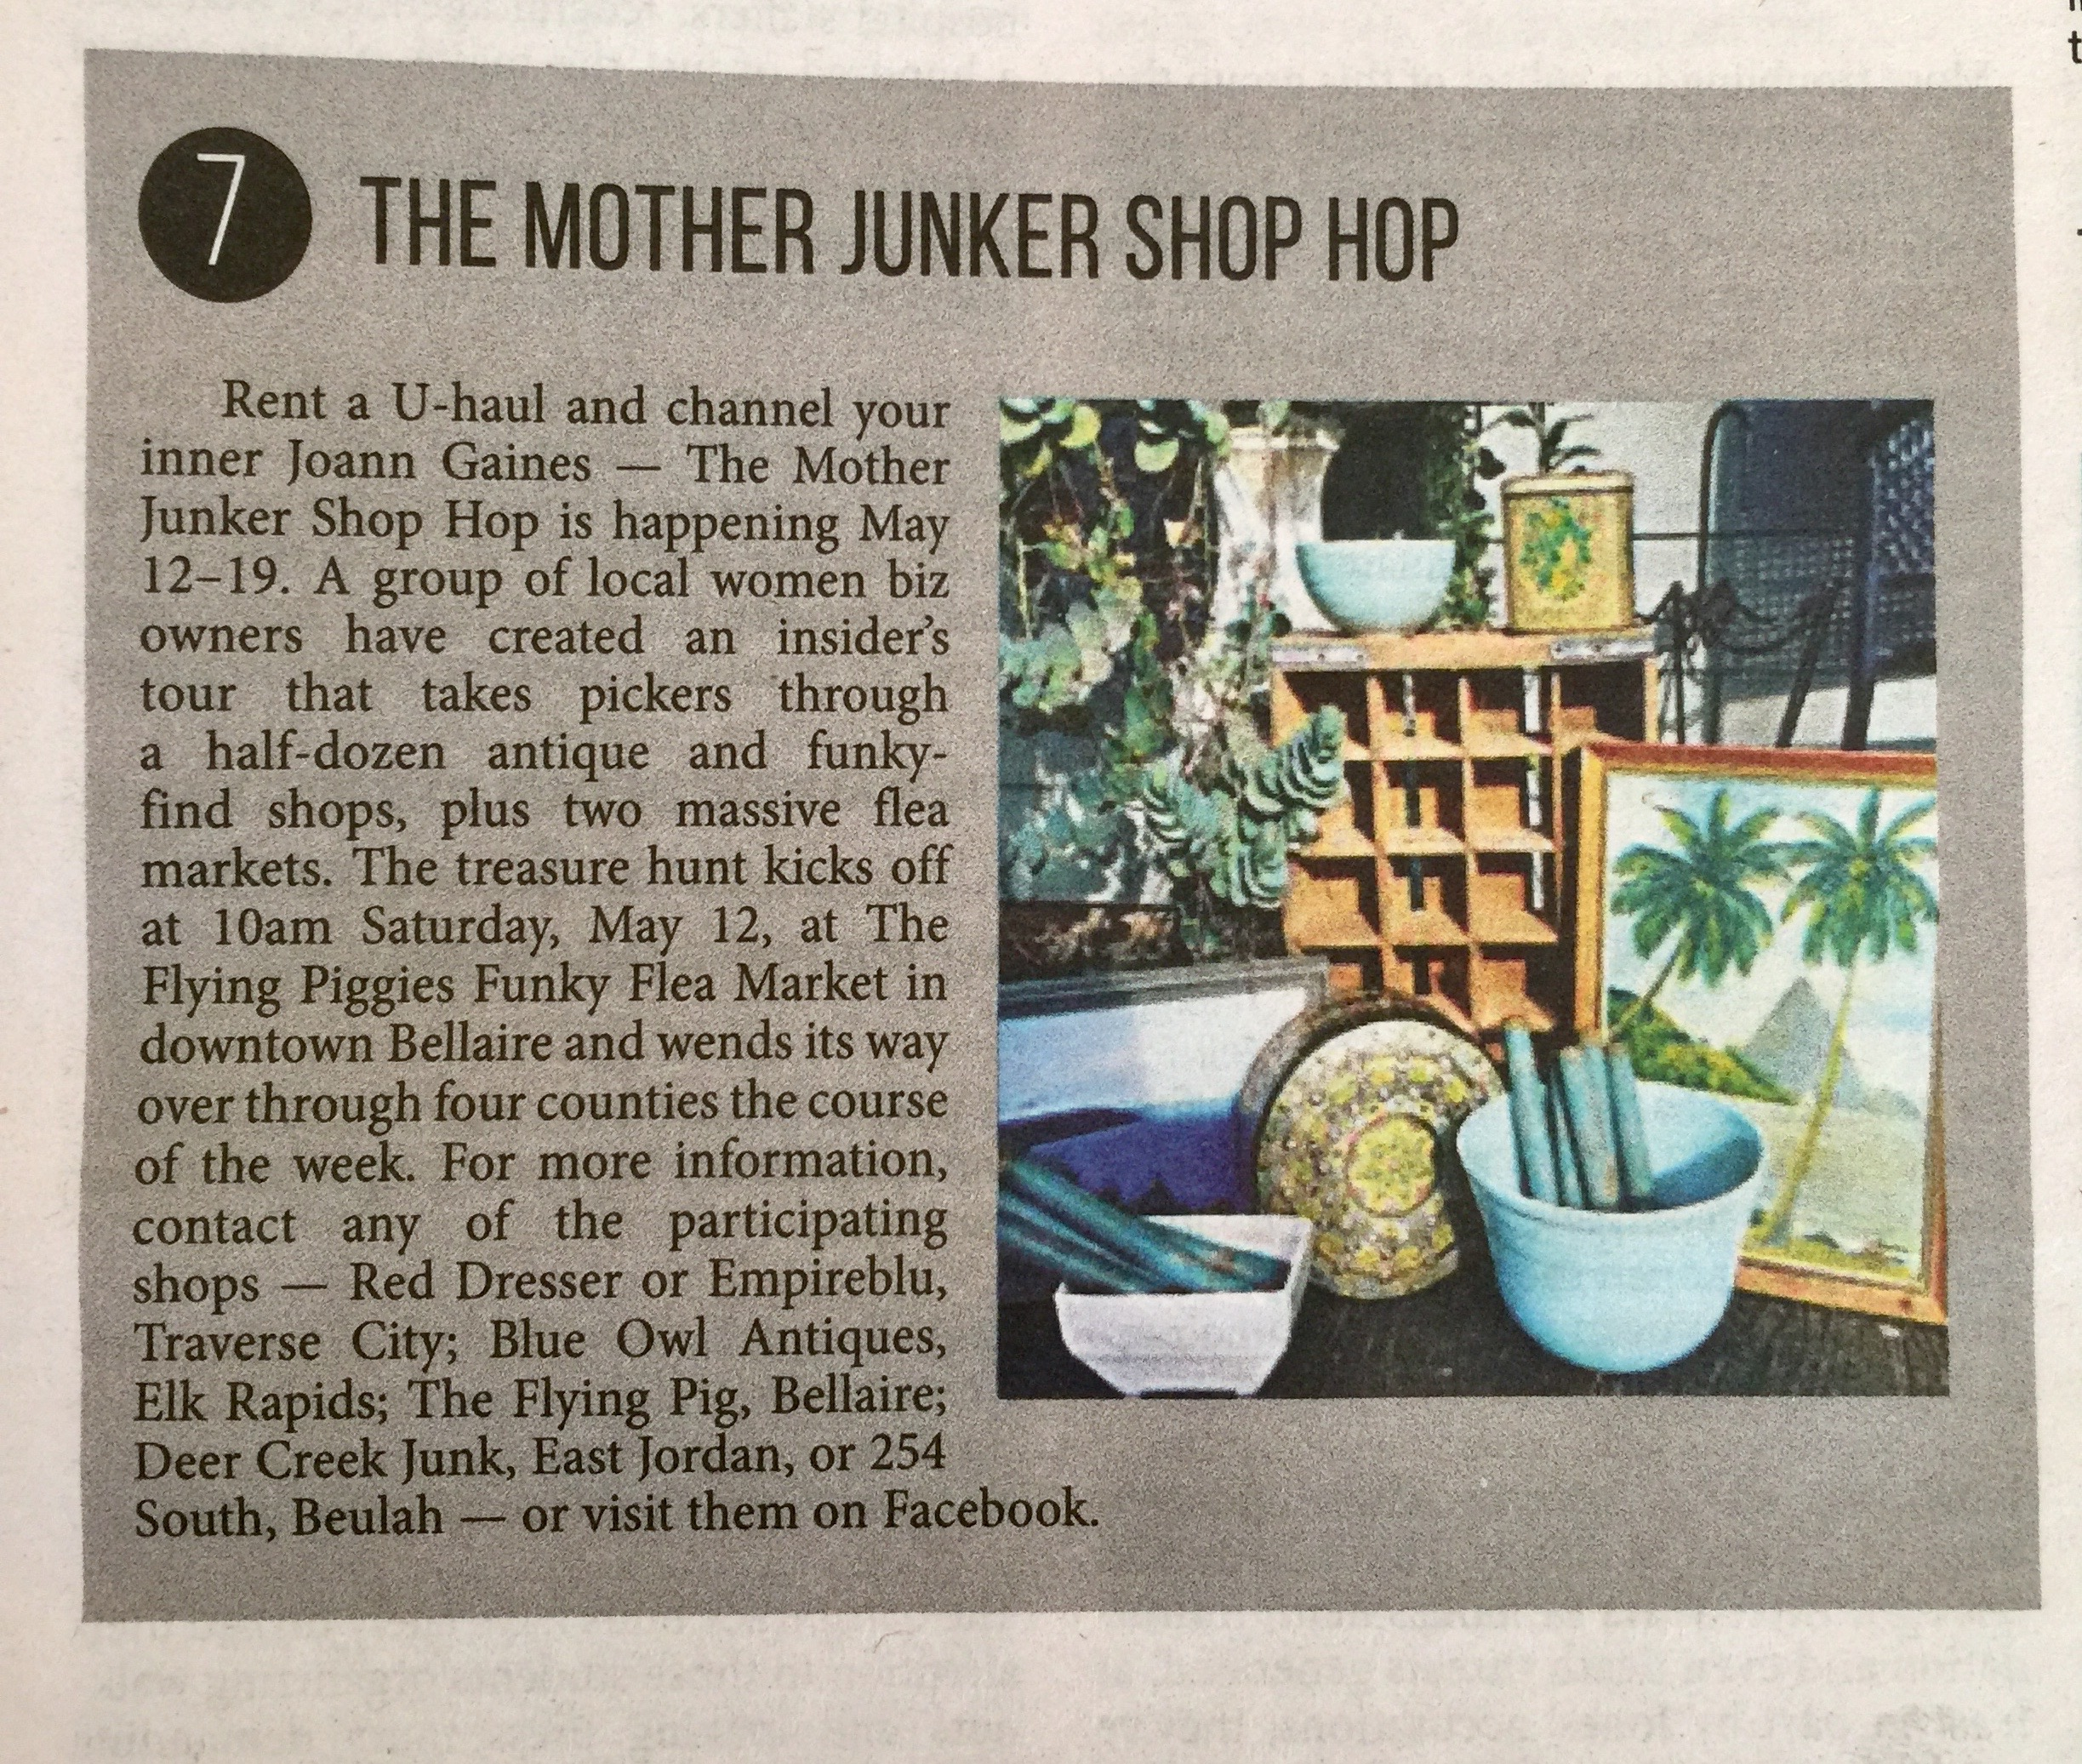 NORTHERN EXPRESS WEEKLY TOP 10  - The Mother Junker Shop-Hop was featured in the April 30th edition of Northern Express